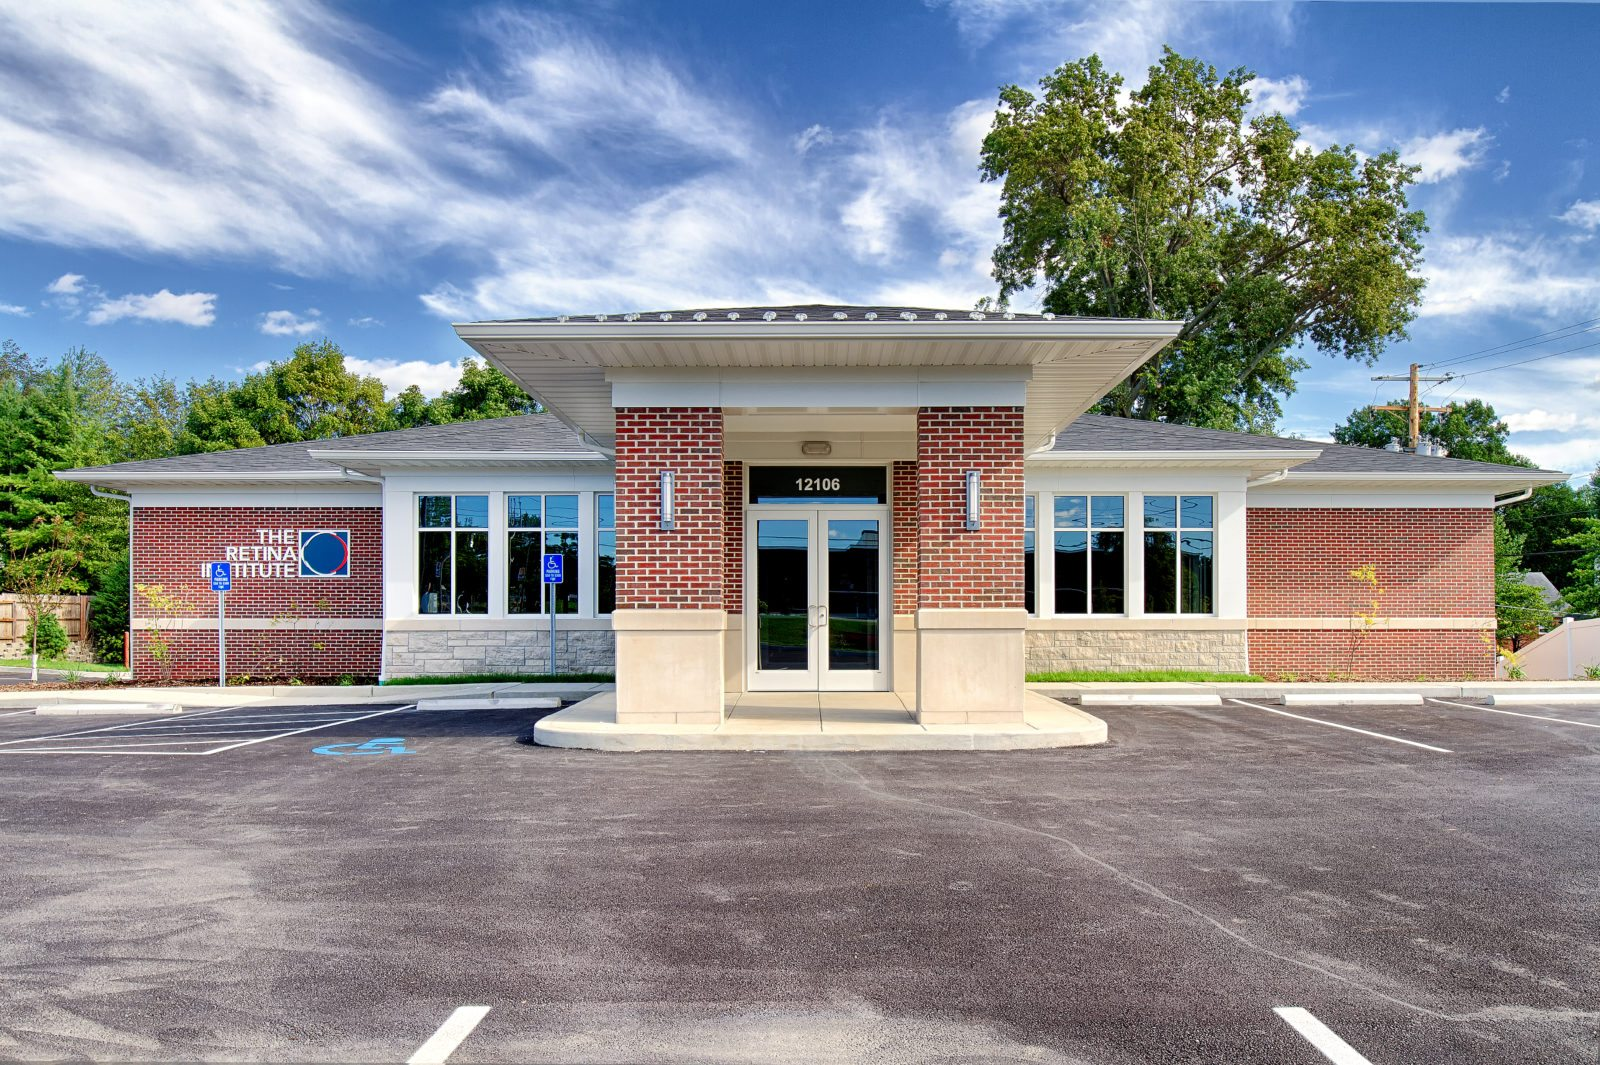 Retina Institute of St. Louis